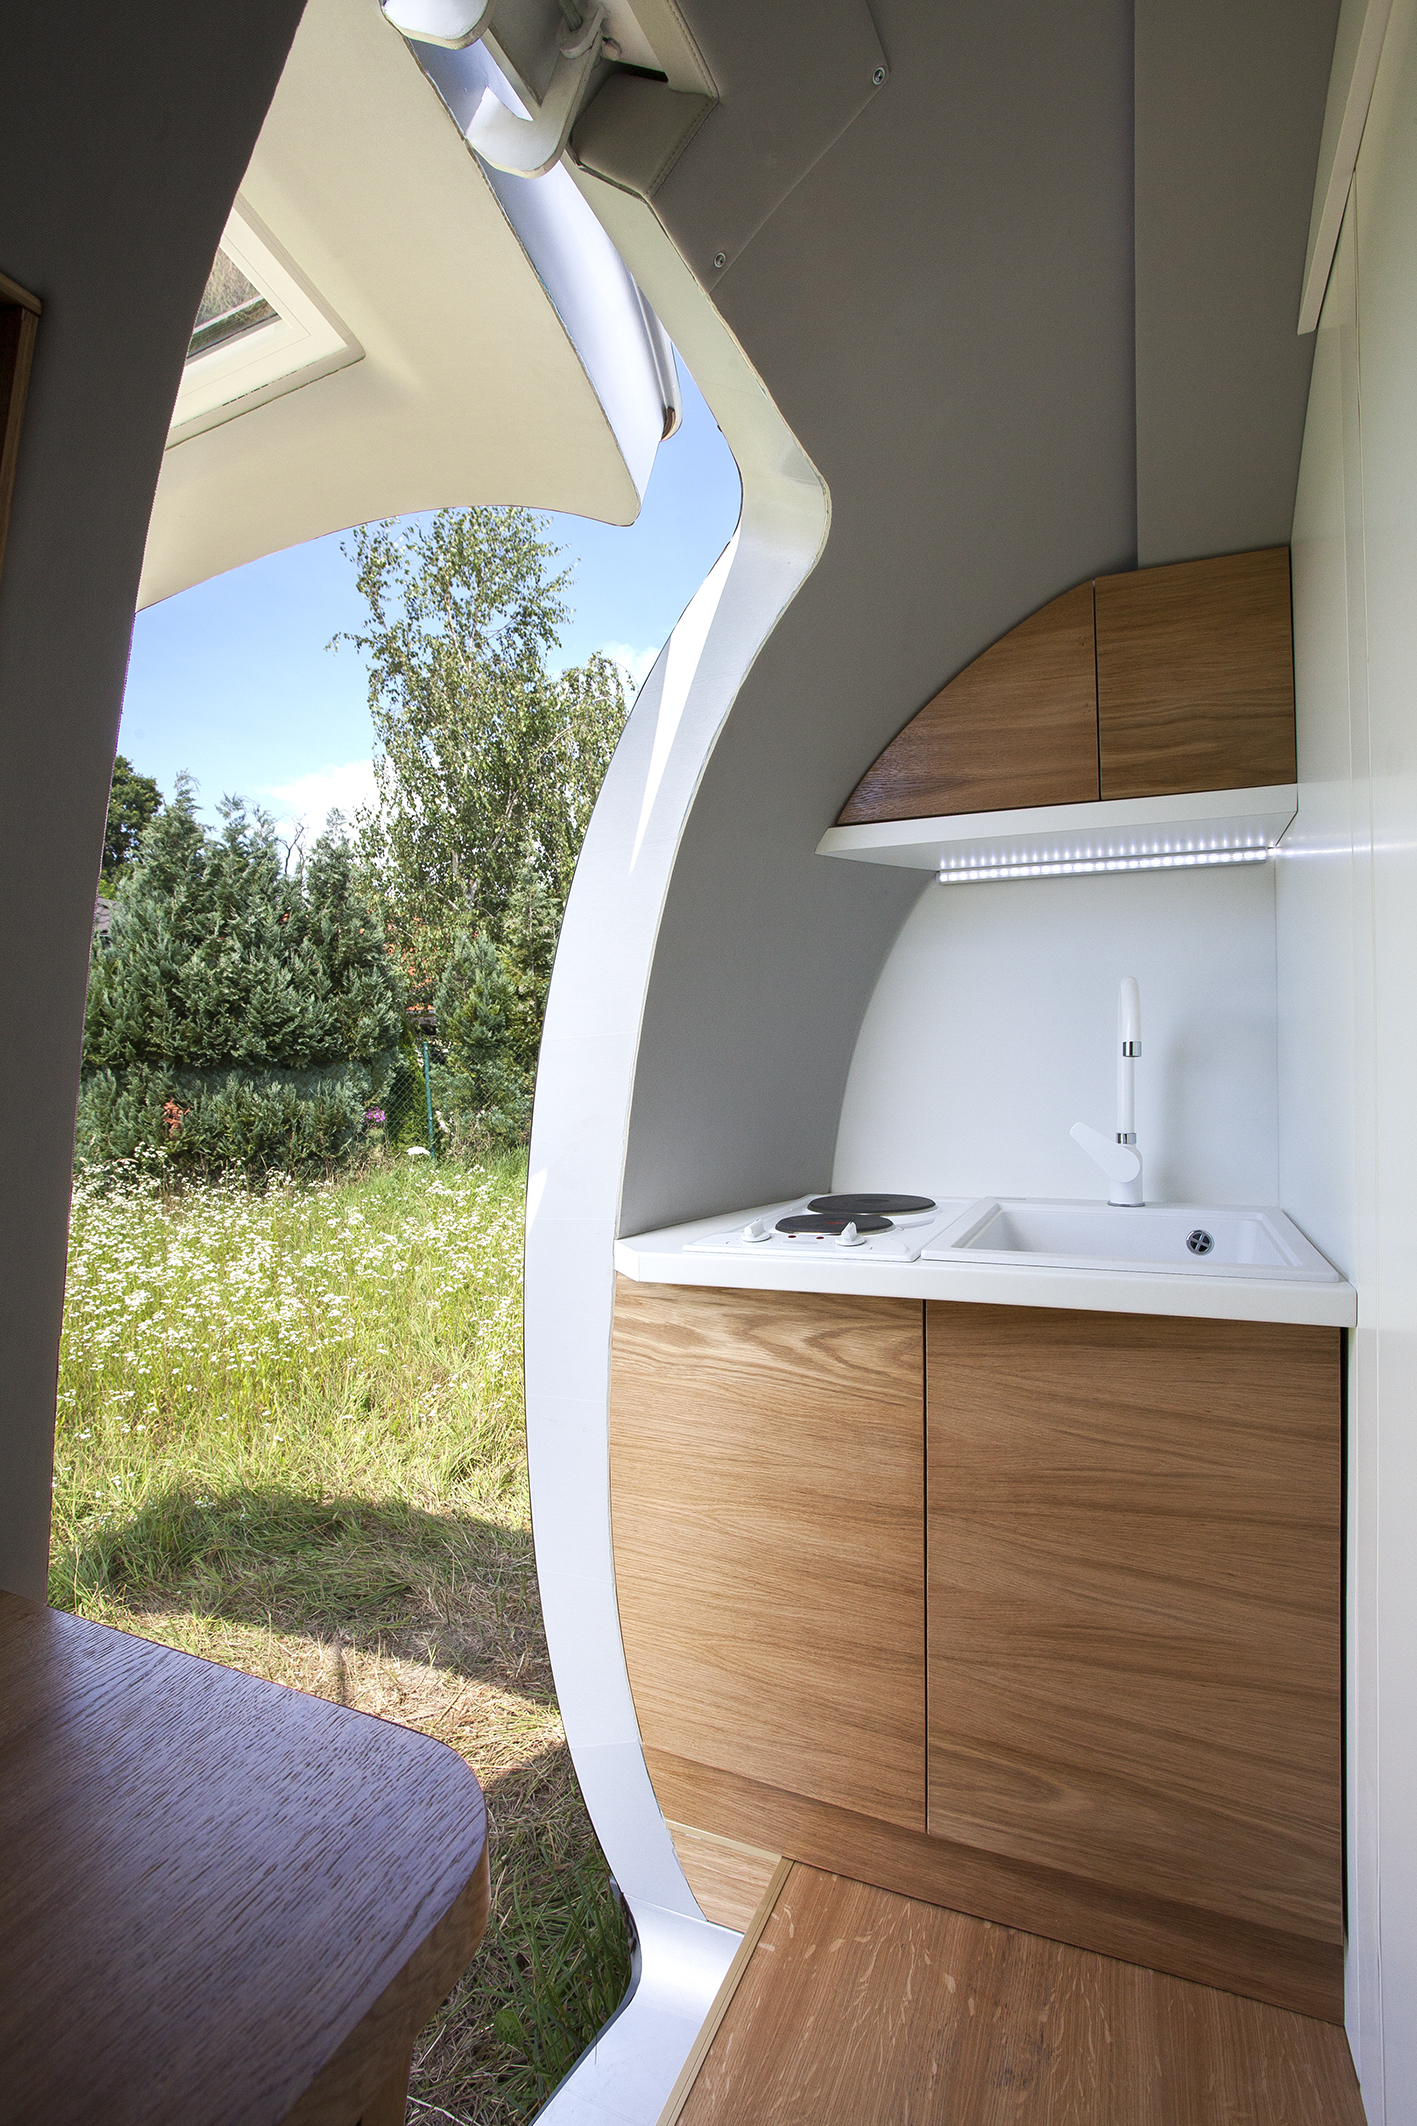 The Ecocapsule's kitchenette with a sink, two burners, and storage cabinets.